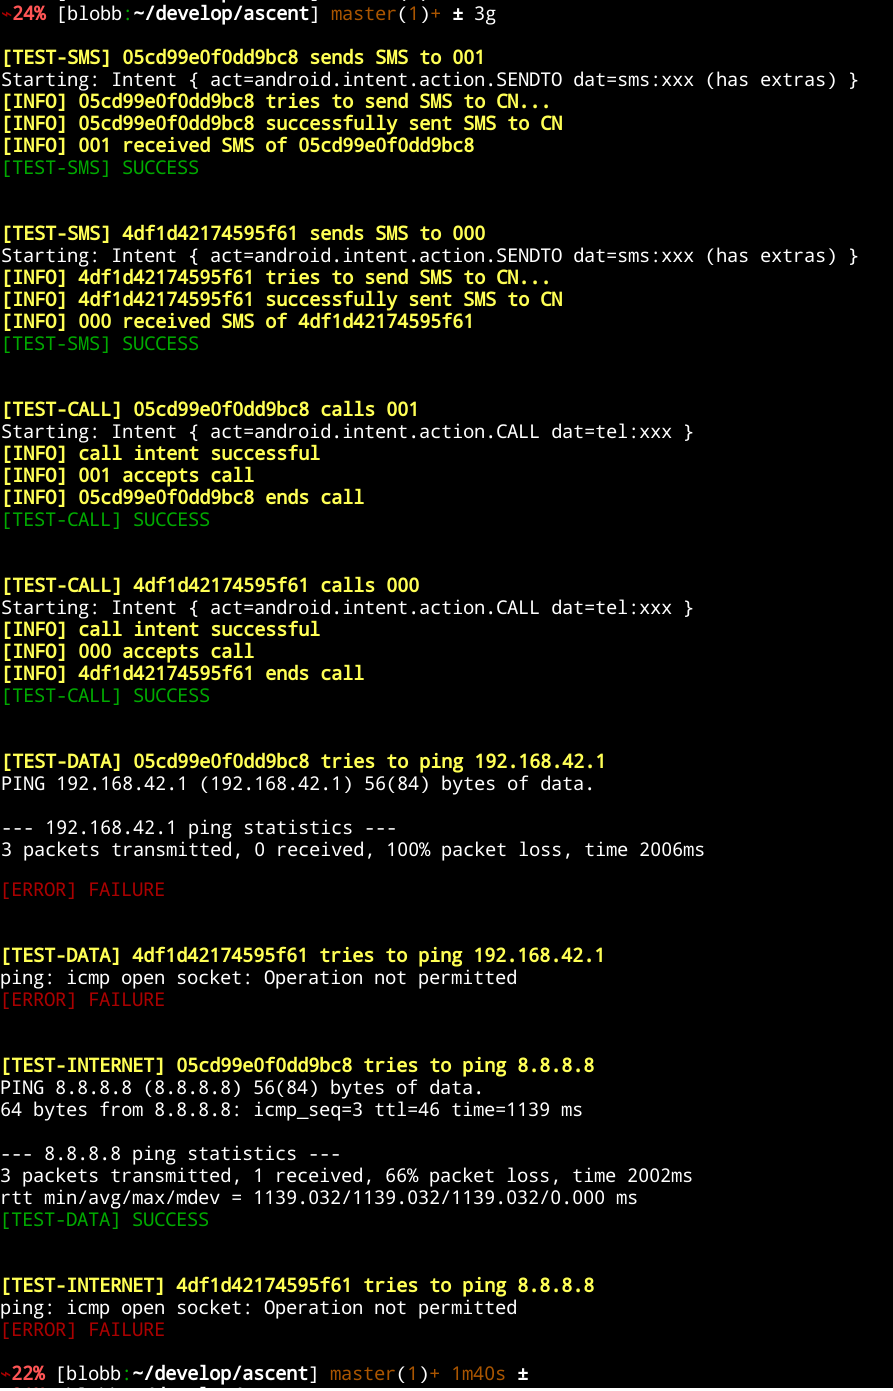 console output of './ascent 3g'